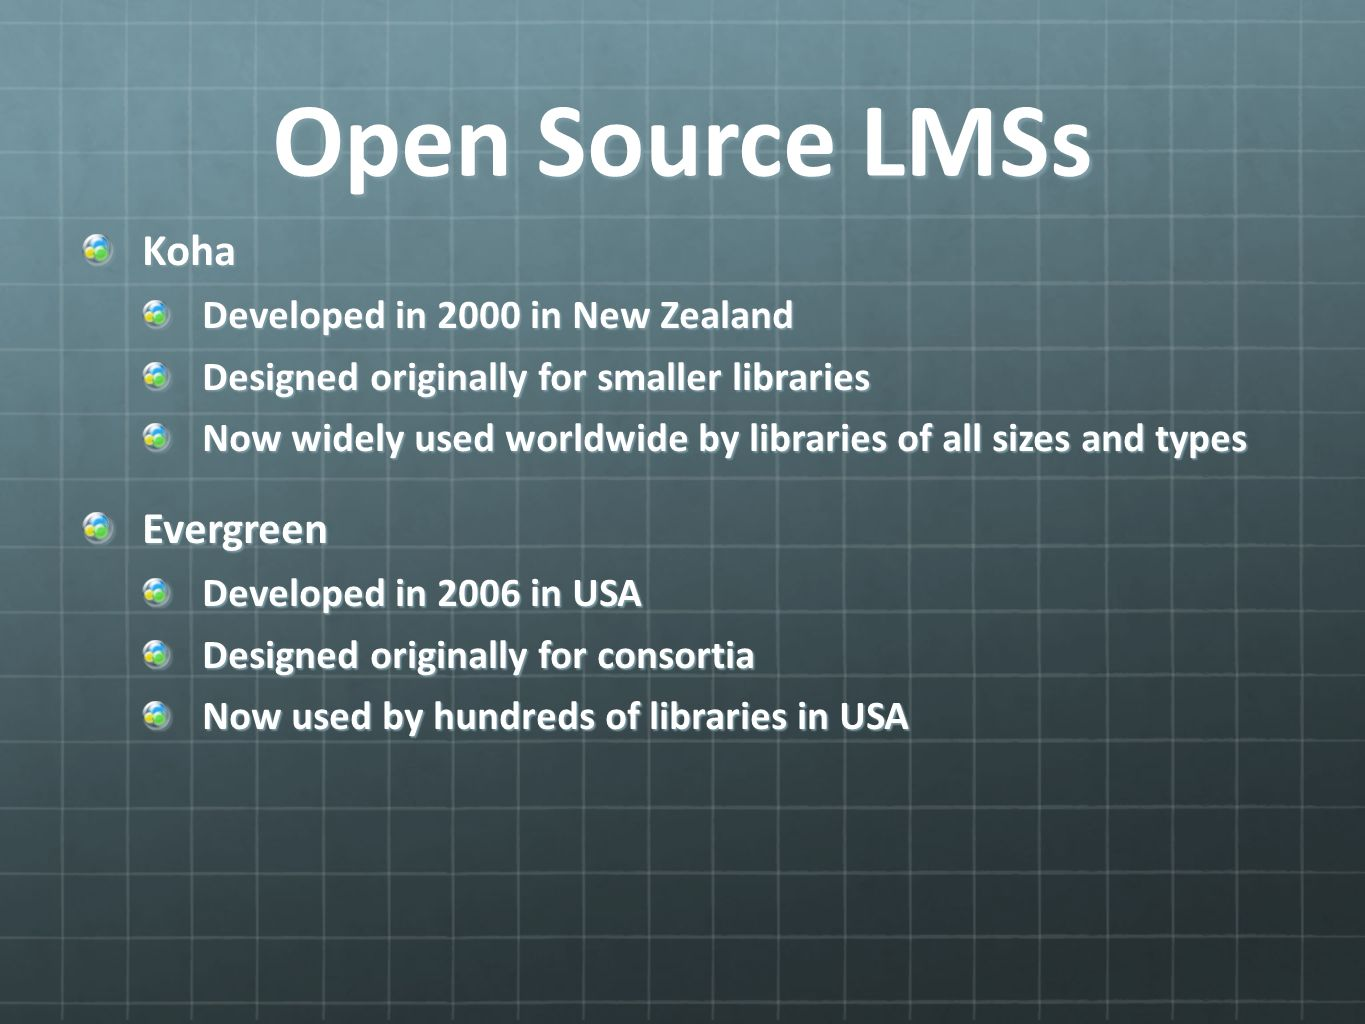 Open Source LMSs Koha Developed in 2000 in New Zealand Designed originally for smaller libraries Now widely used worldwide by libraries of all sizes and types Evergreen Developed in 2006 in USA Designed originally for consortia Now used by hundreds of libraries in USA